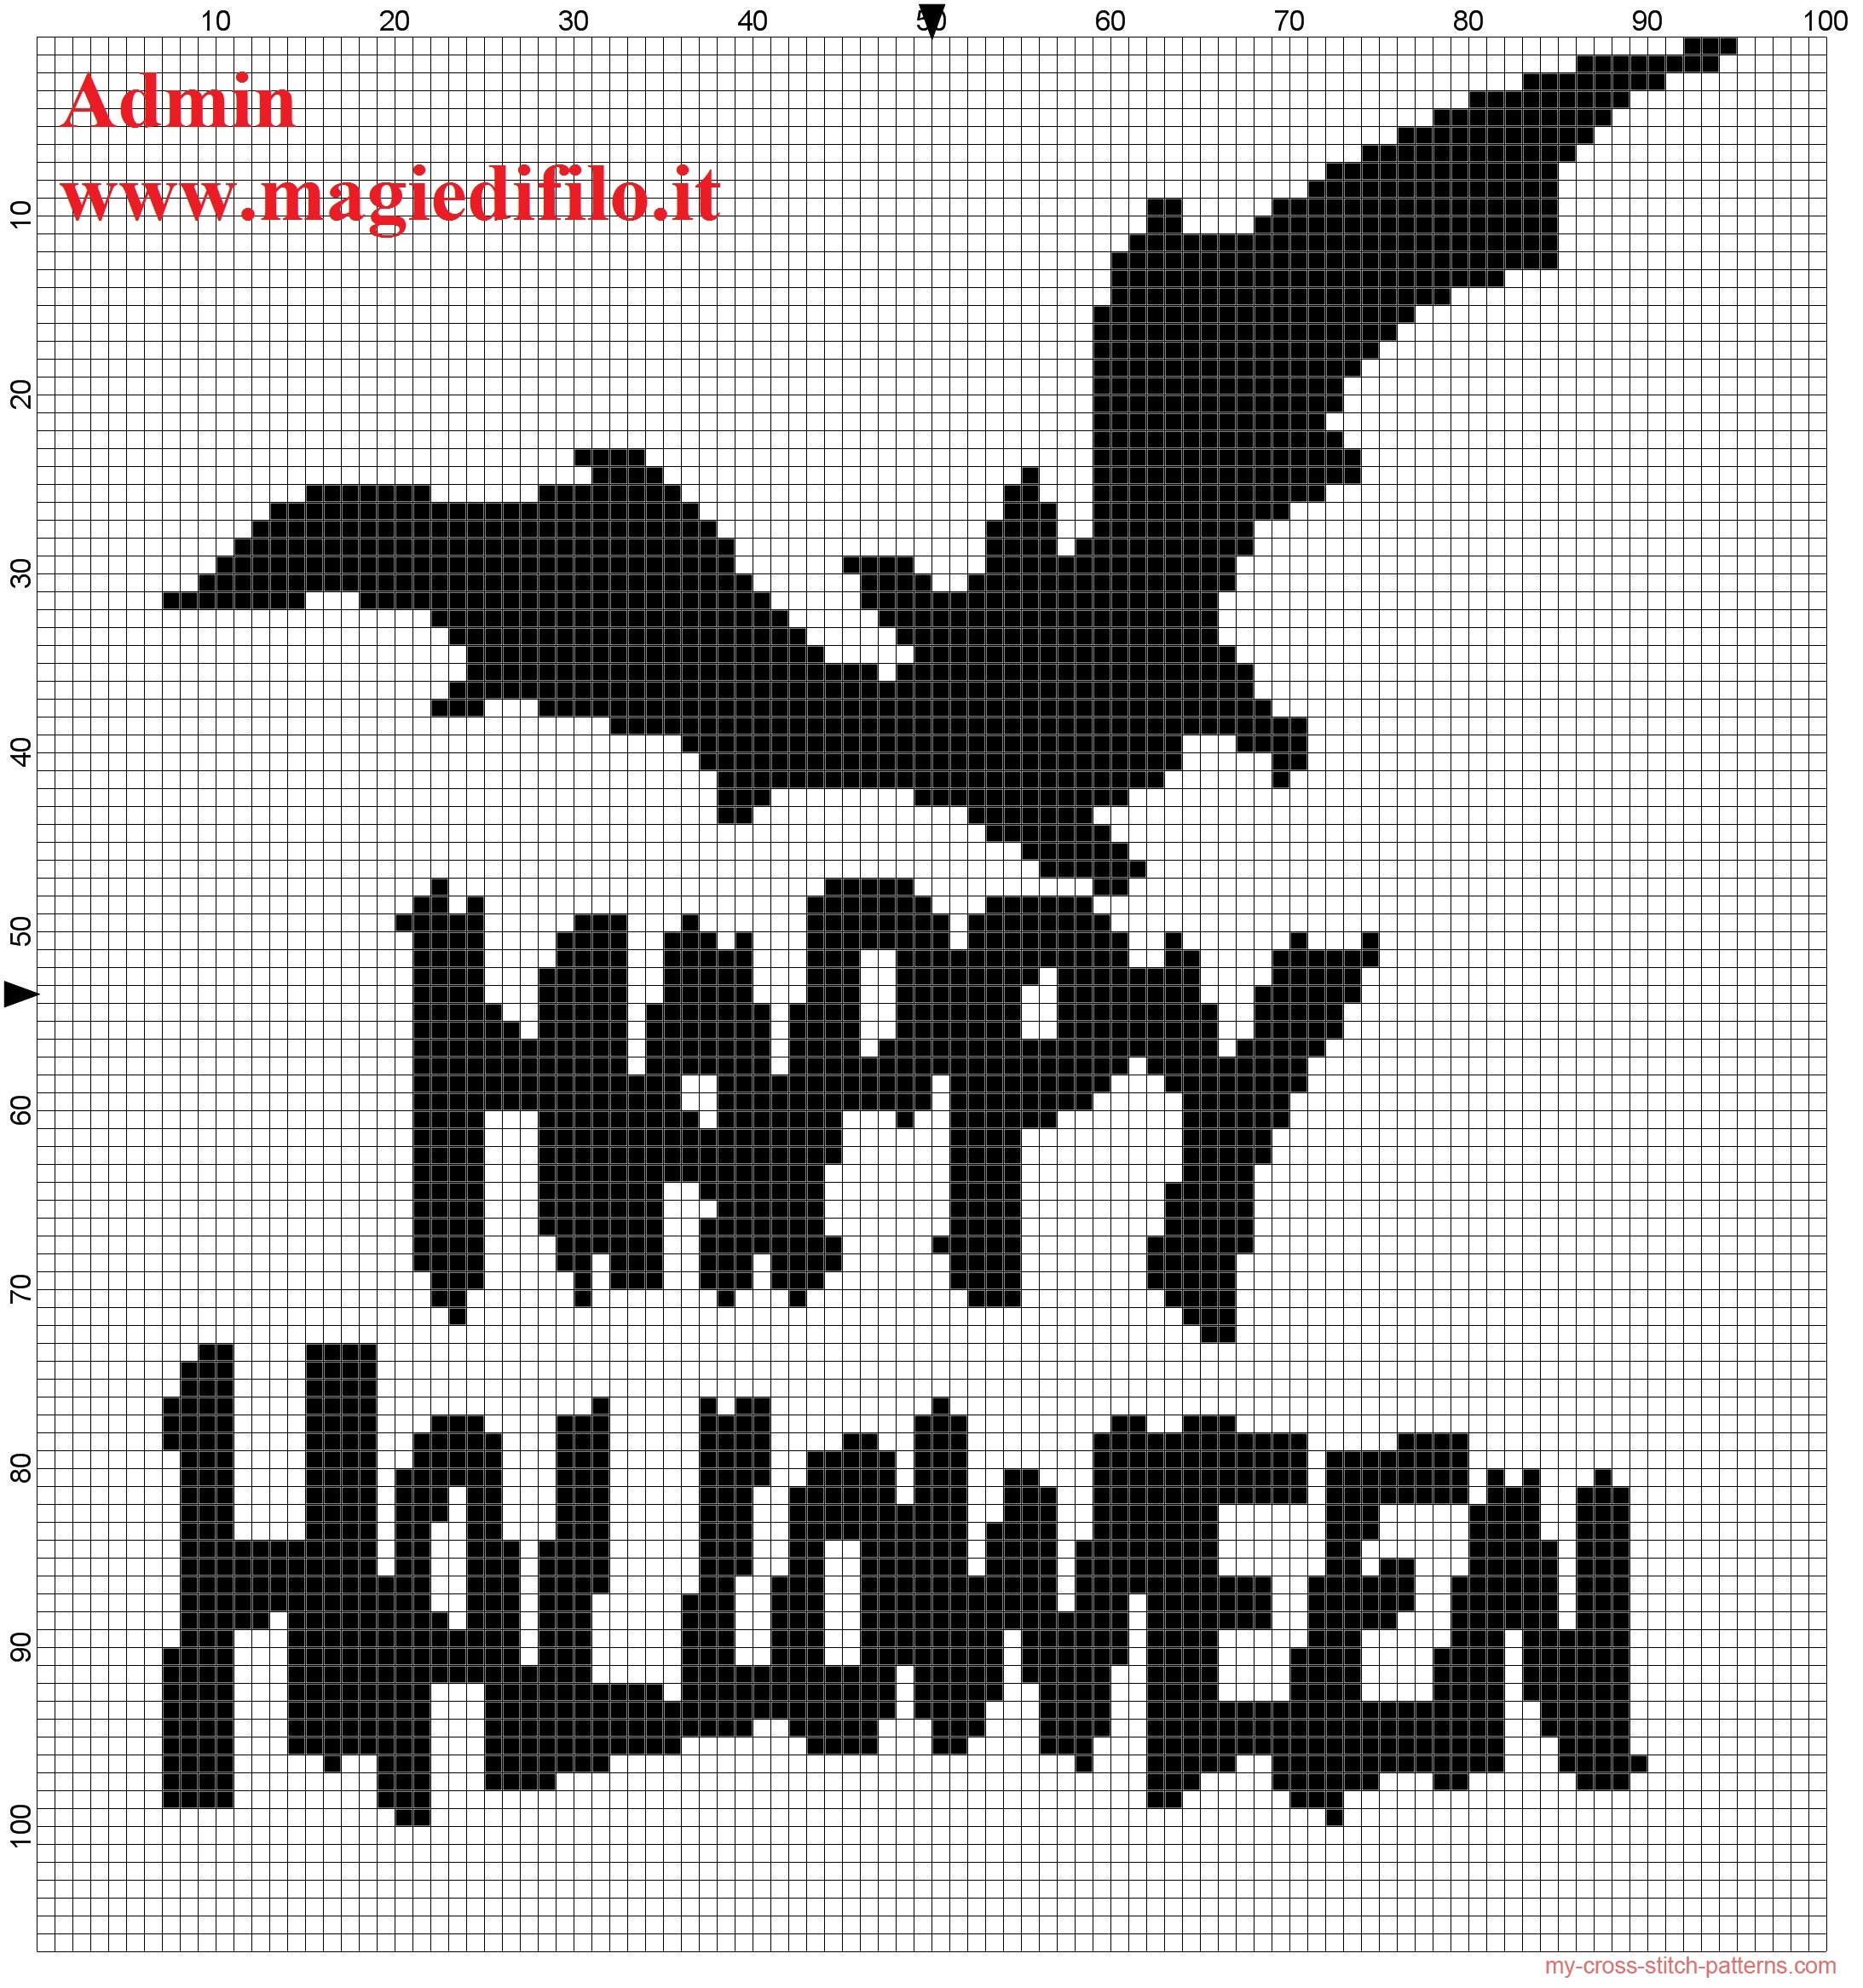 text_happy_halloween_with_a_black_bat